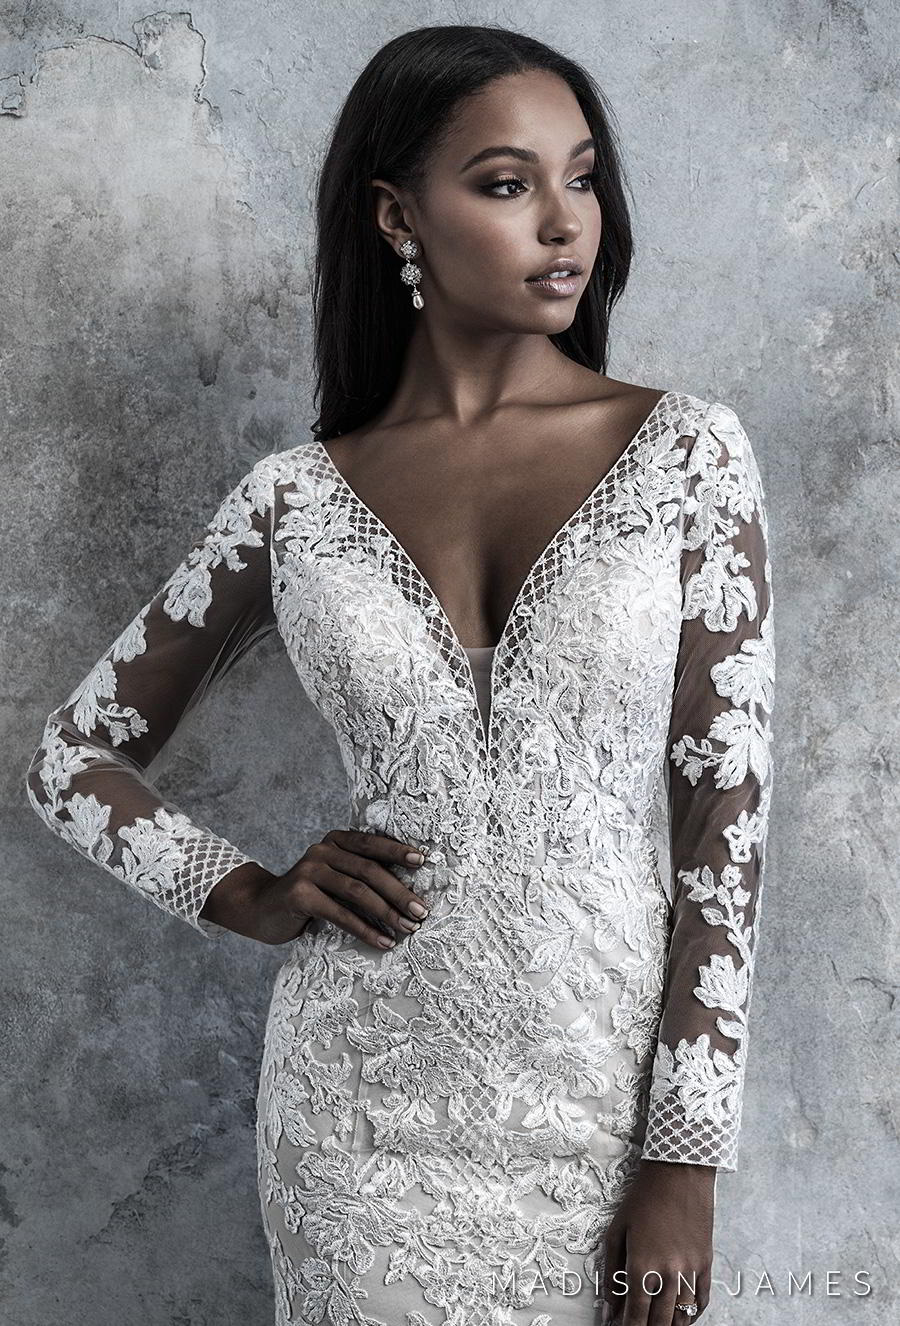 madison james 2019 bridal long sleeves v neck full embellishment elegant drop waist a line wedding dress backless low v back chapel train (511) zv